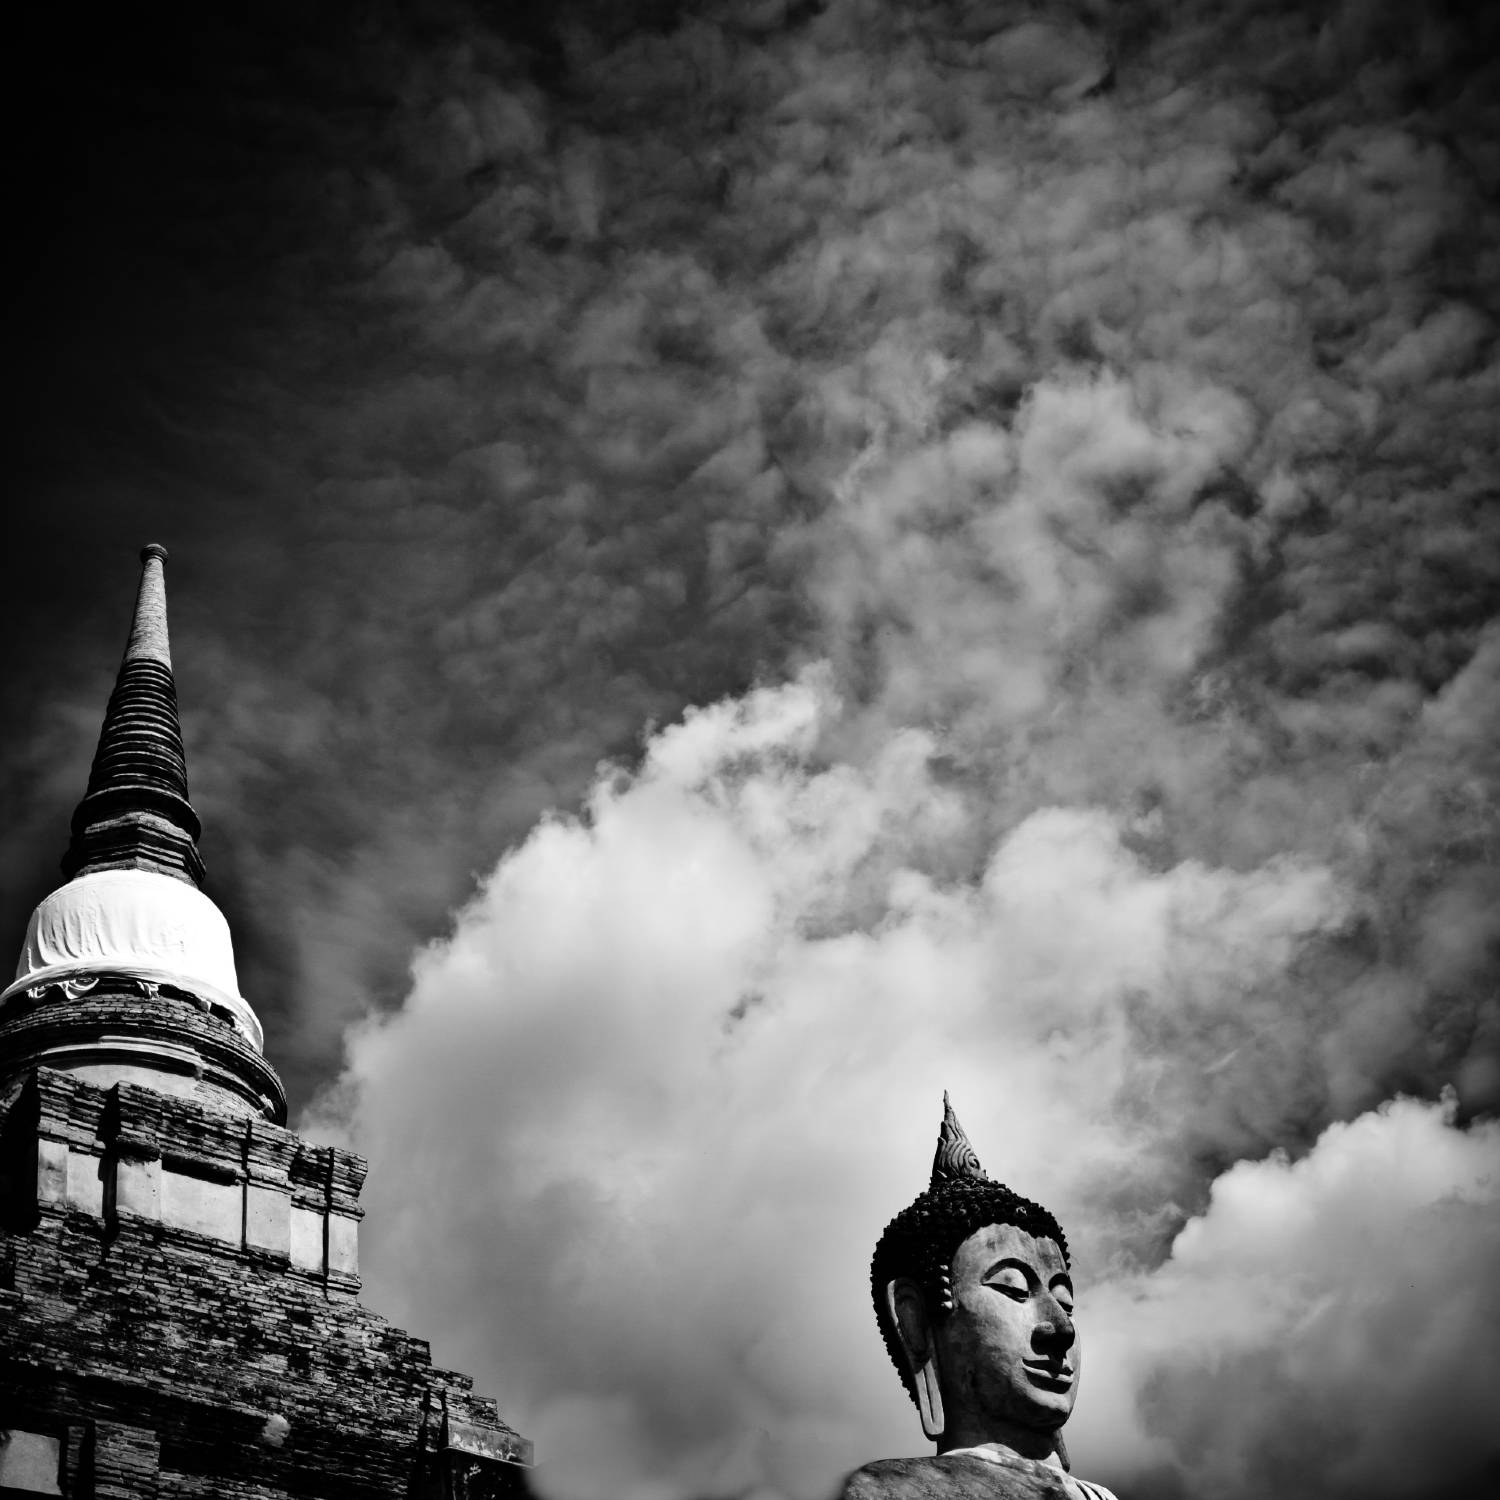 A Buddha statue and stupa of Ayutthaya under a backdrop of clouds.